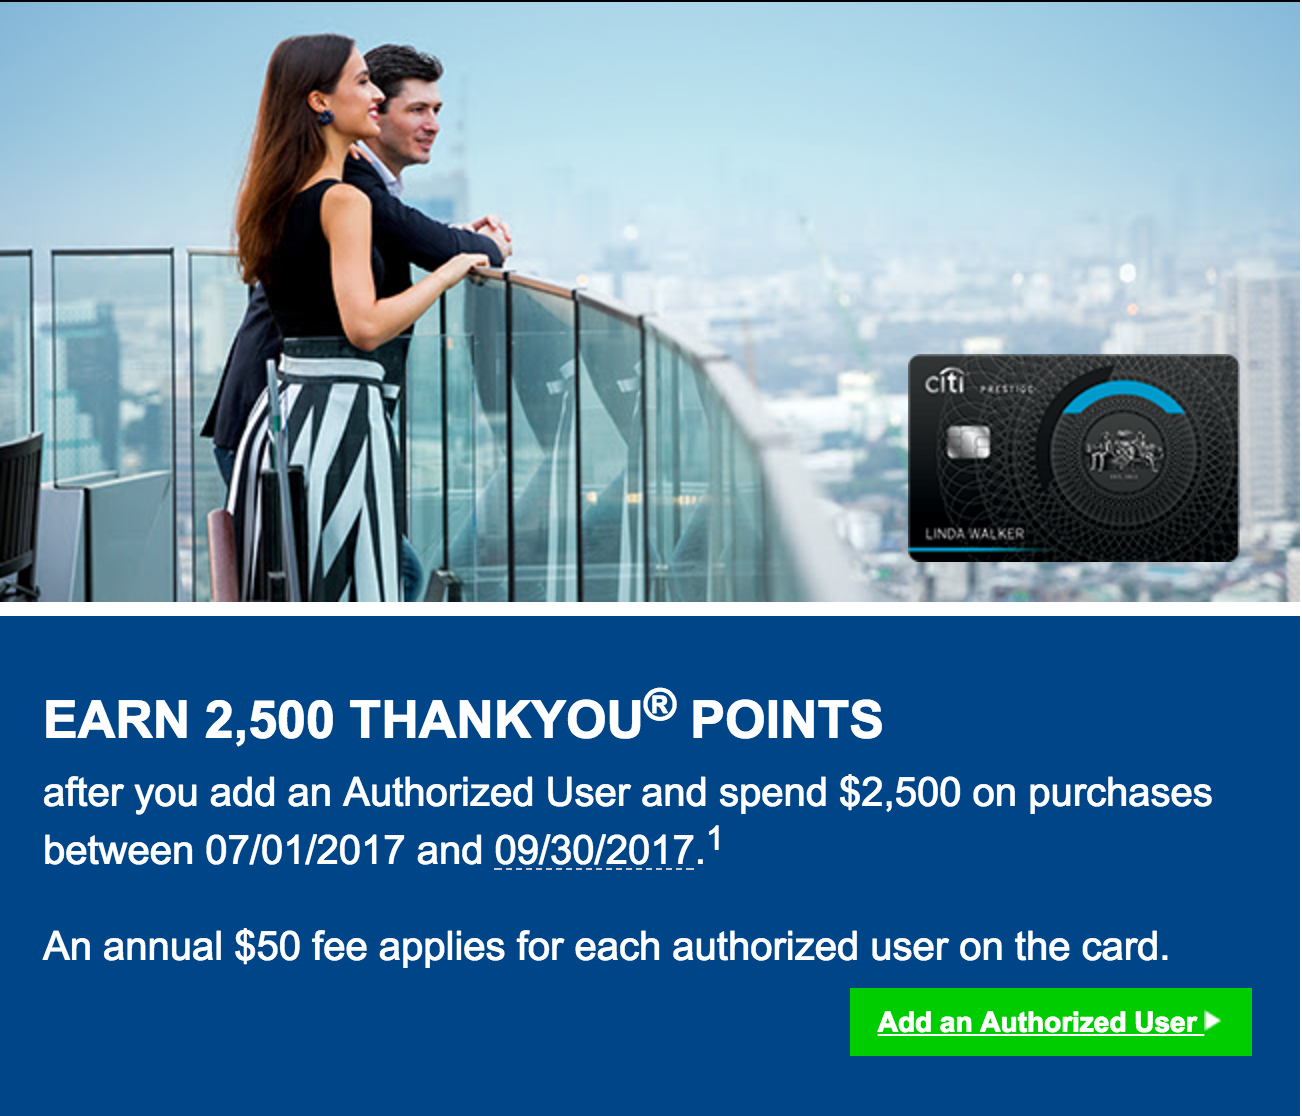 Citibank is offering 2,500 bonus ThankYou Points for adding an authorized and spending $2,500